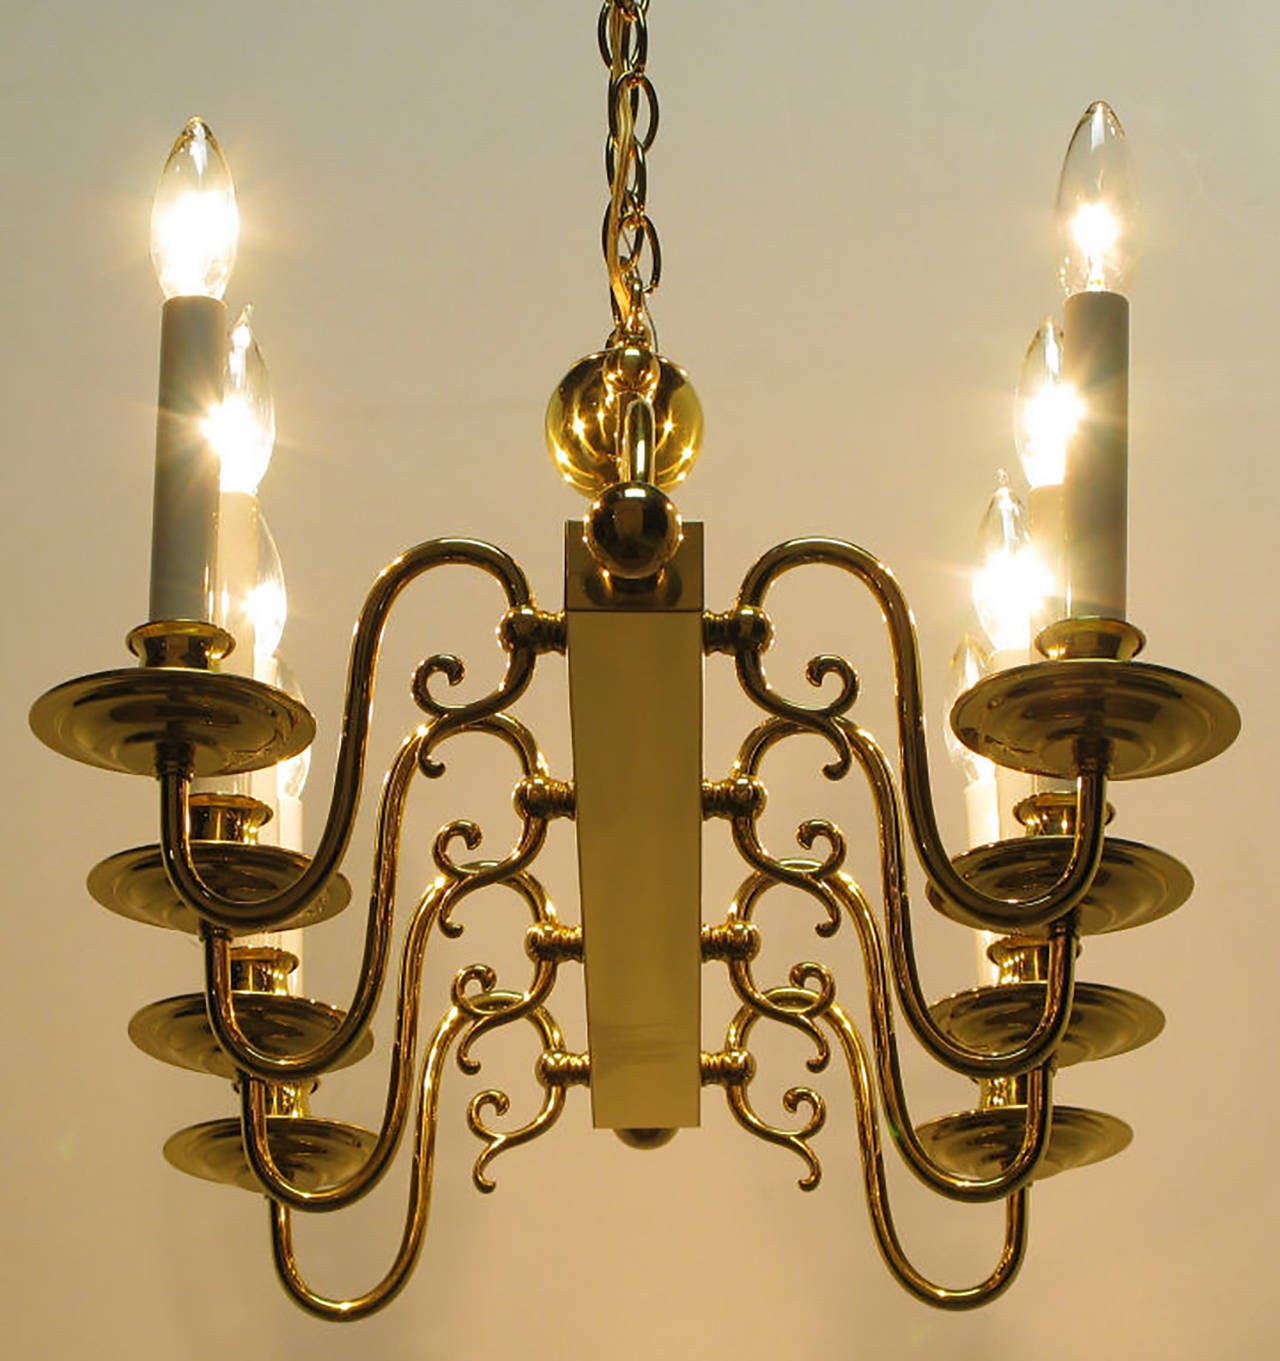 Eight Arm Linear Brass Rectangular Chandelier For Sale at